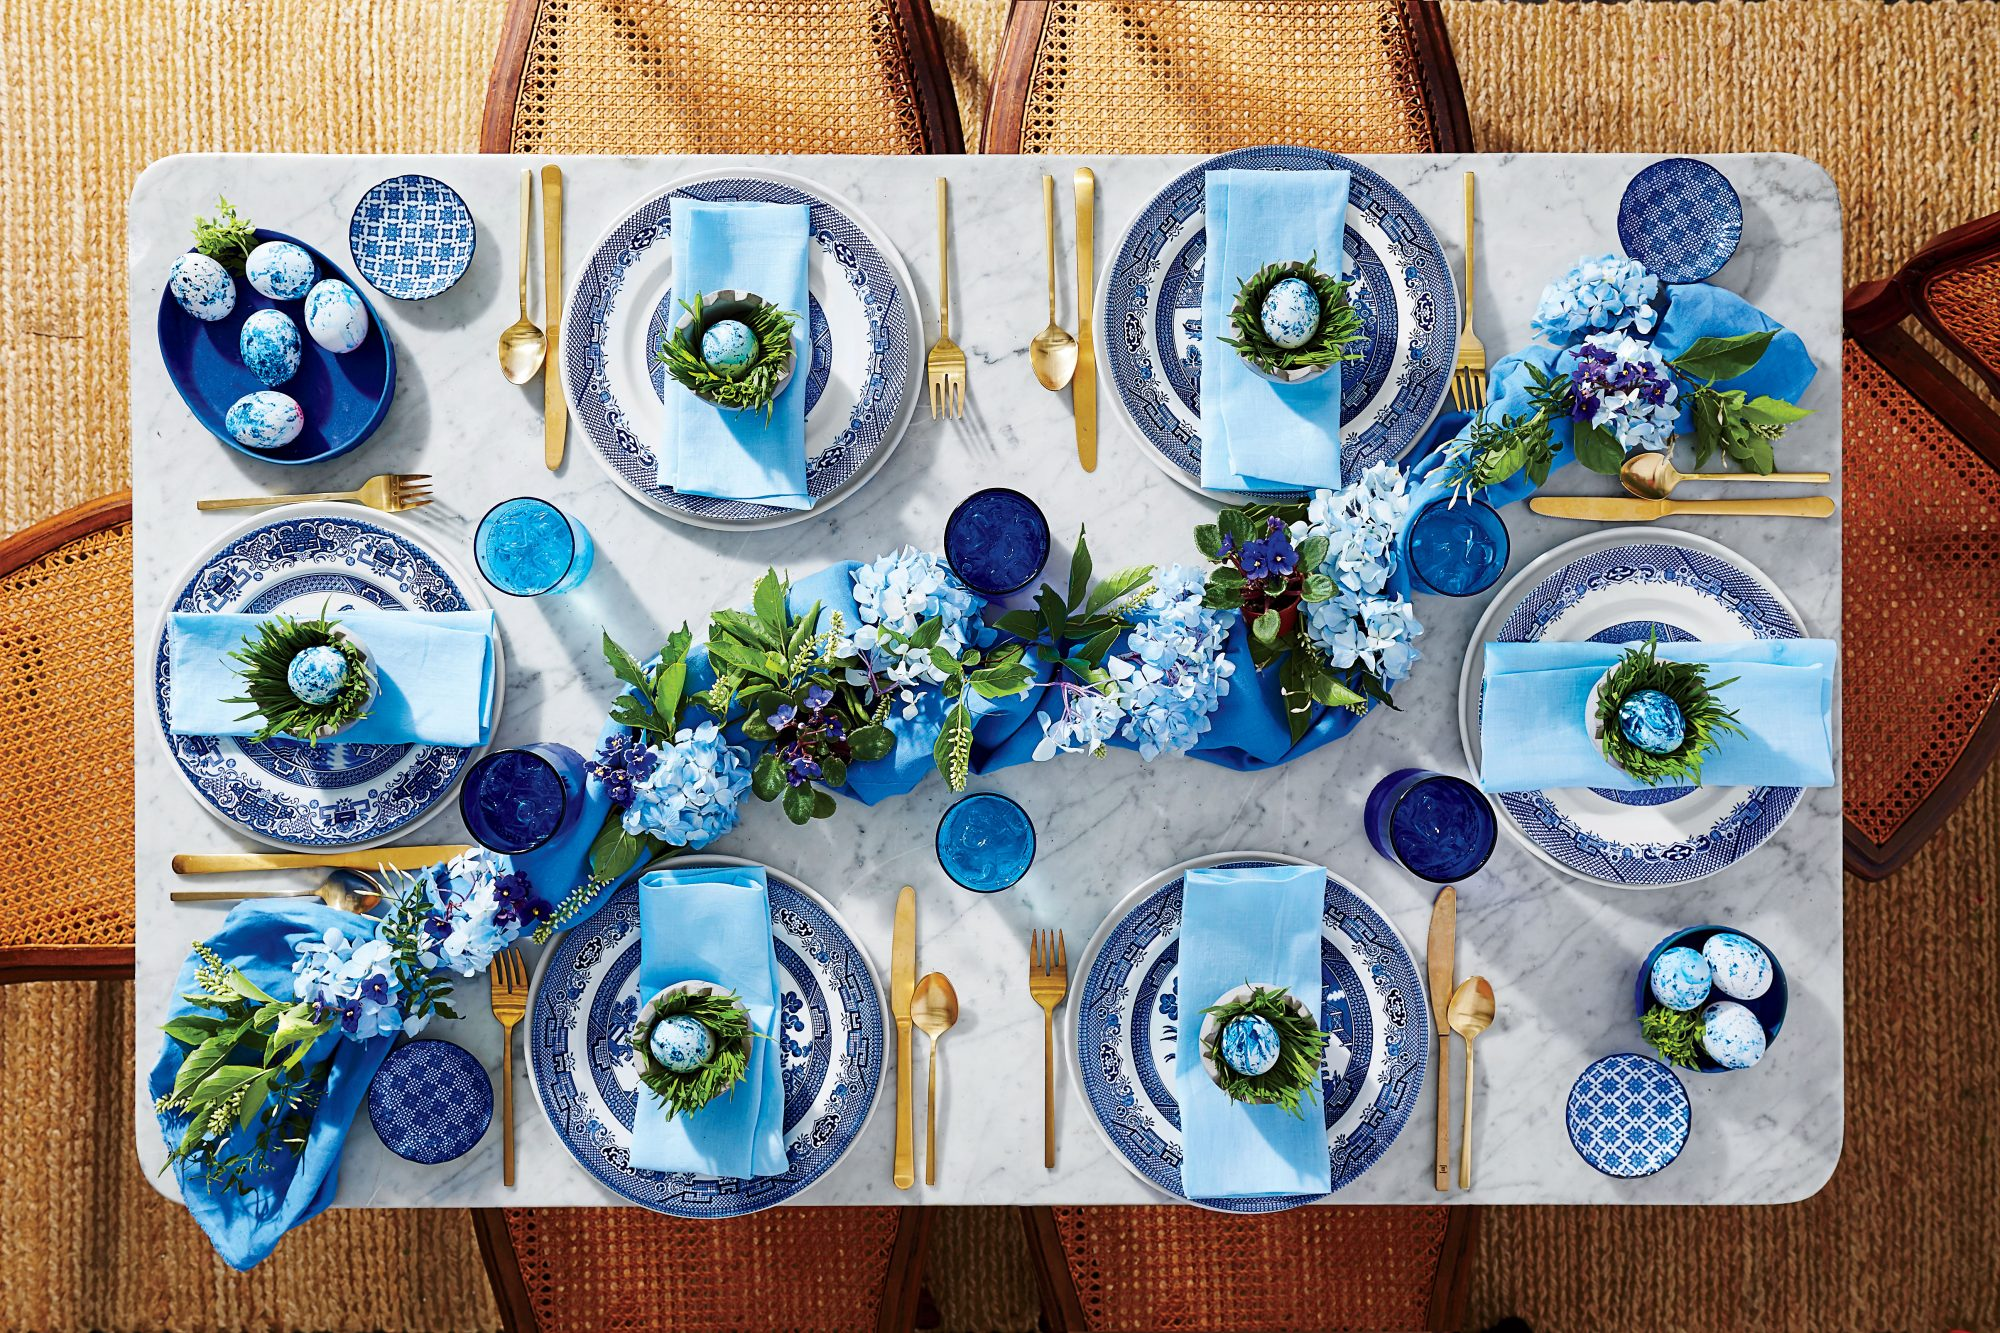 The Can't-Be-Beat Blue and White Table